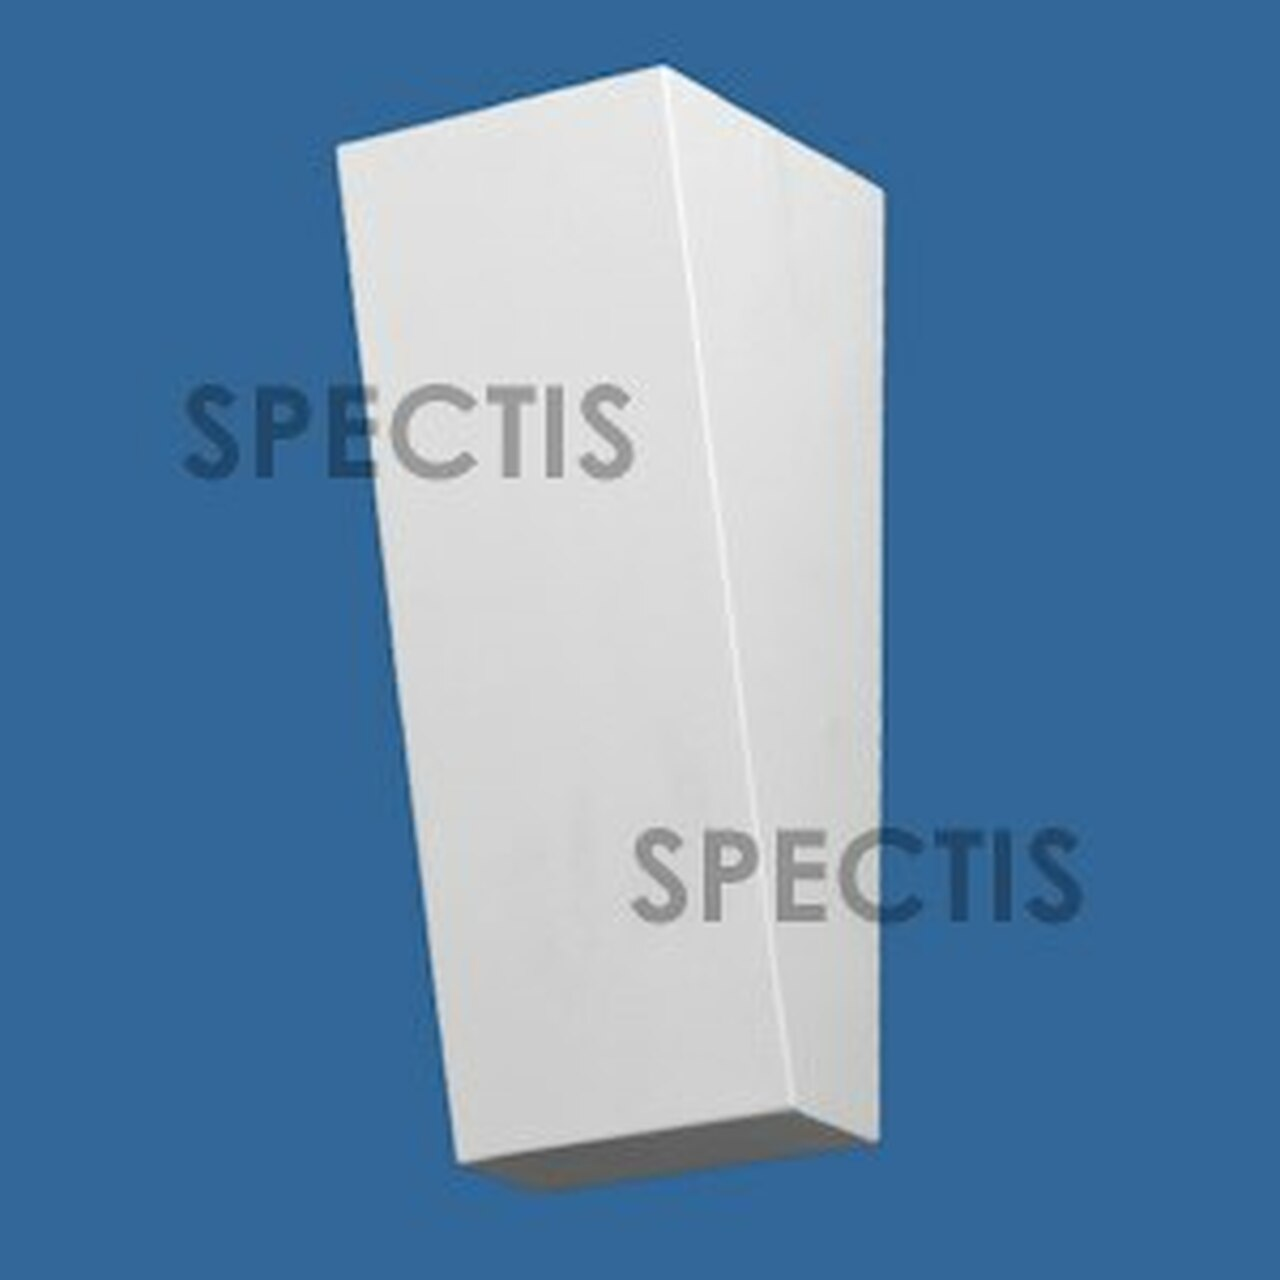 """BL3066 Spectis Eave Block or Bracket 4""""W x 4""""H x 10"""" Projection"""